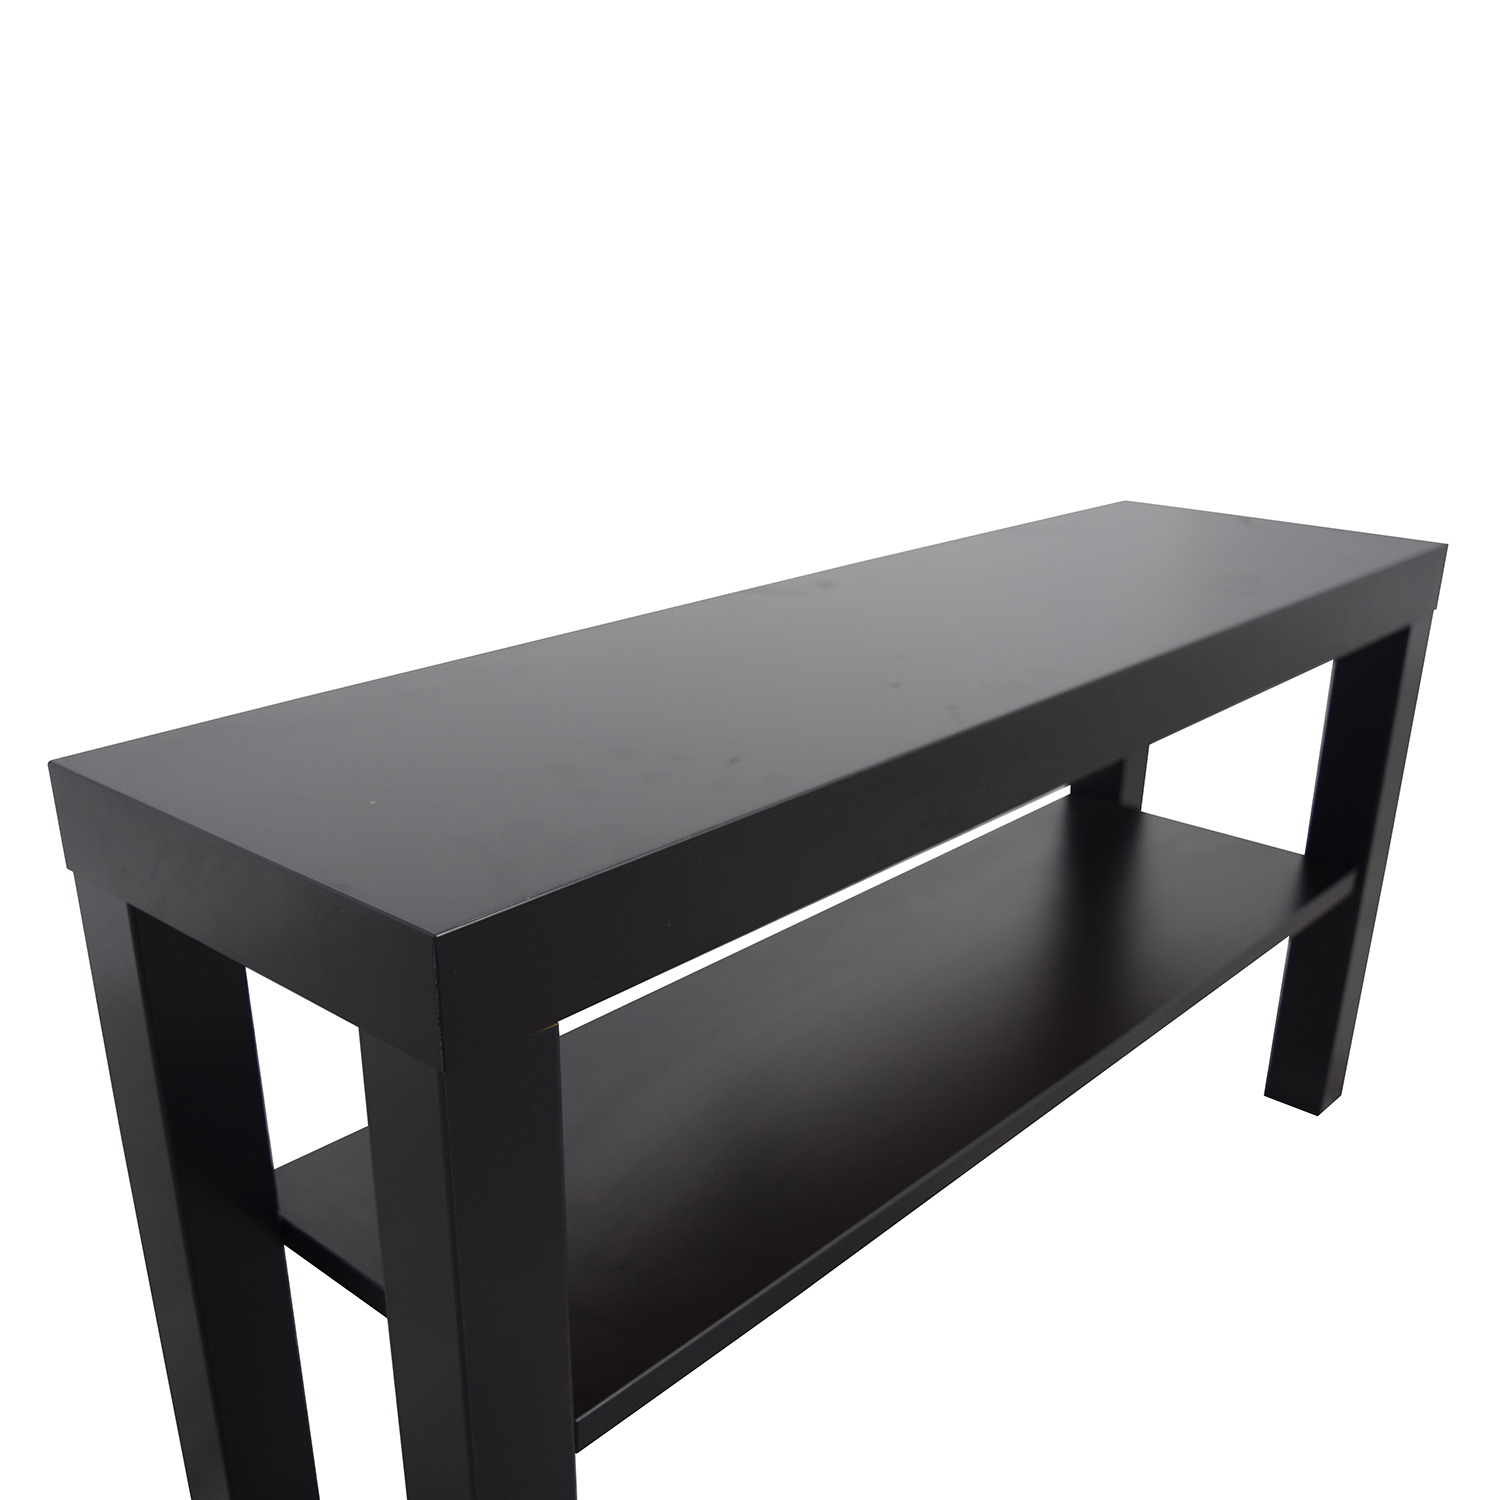 59 off ikea ikea lack black tv stand storage. Black Bedroom Furniture Sets. Home Design Ideas